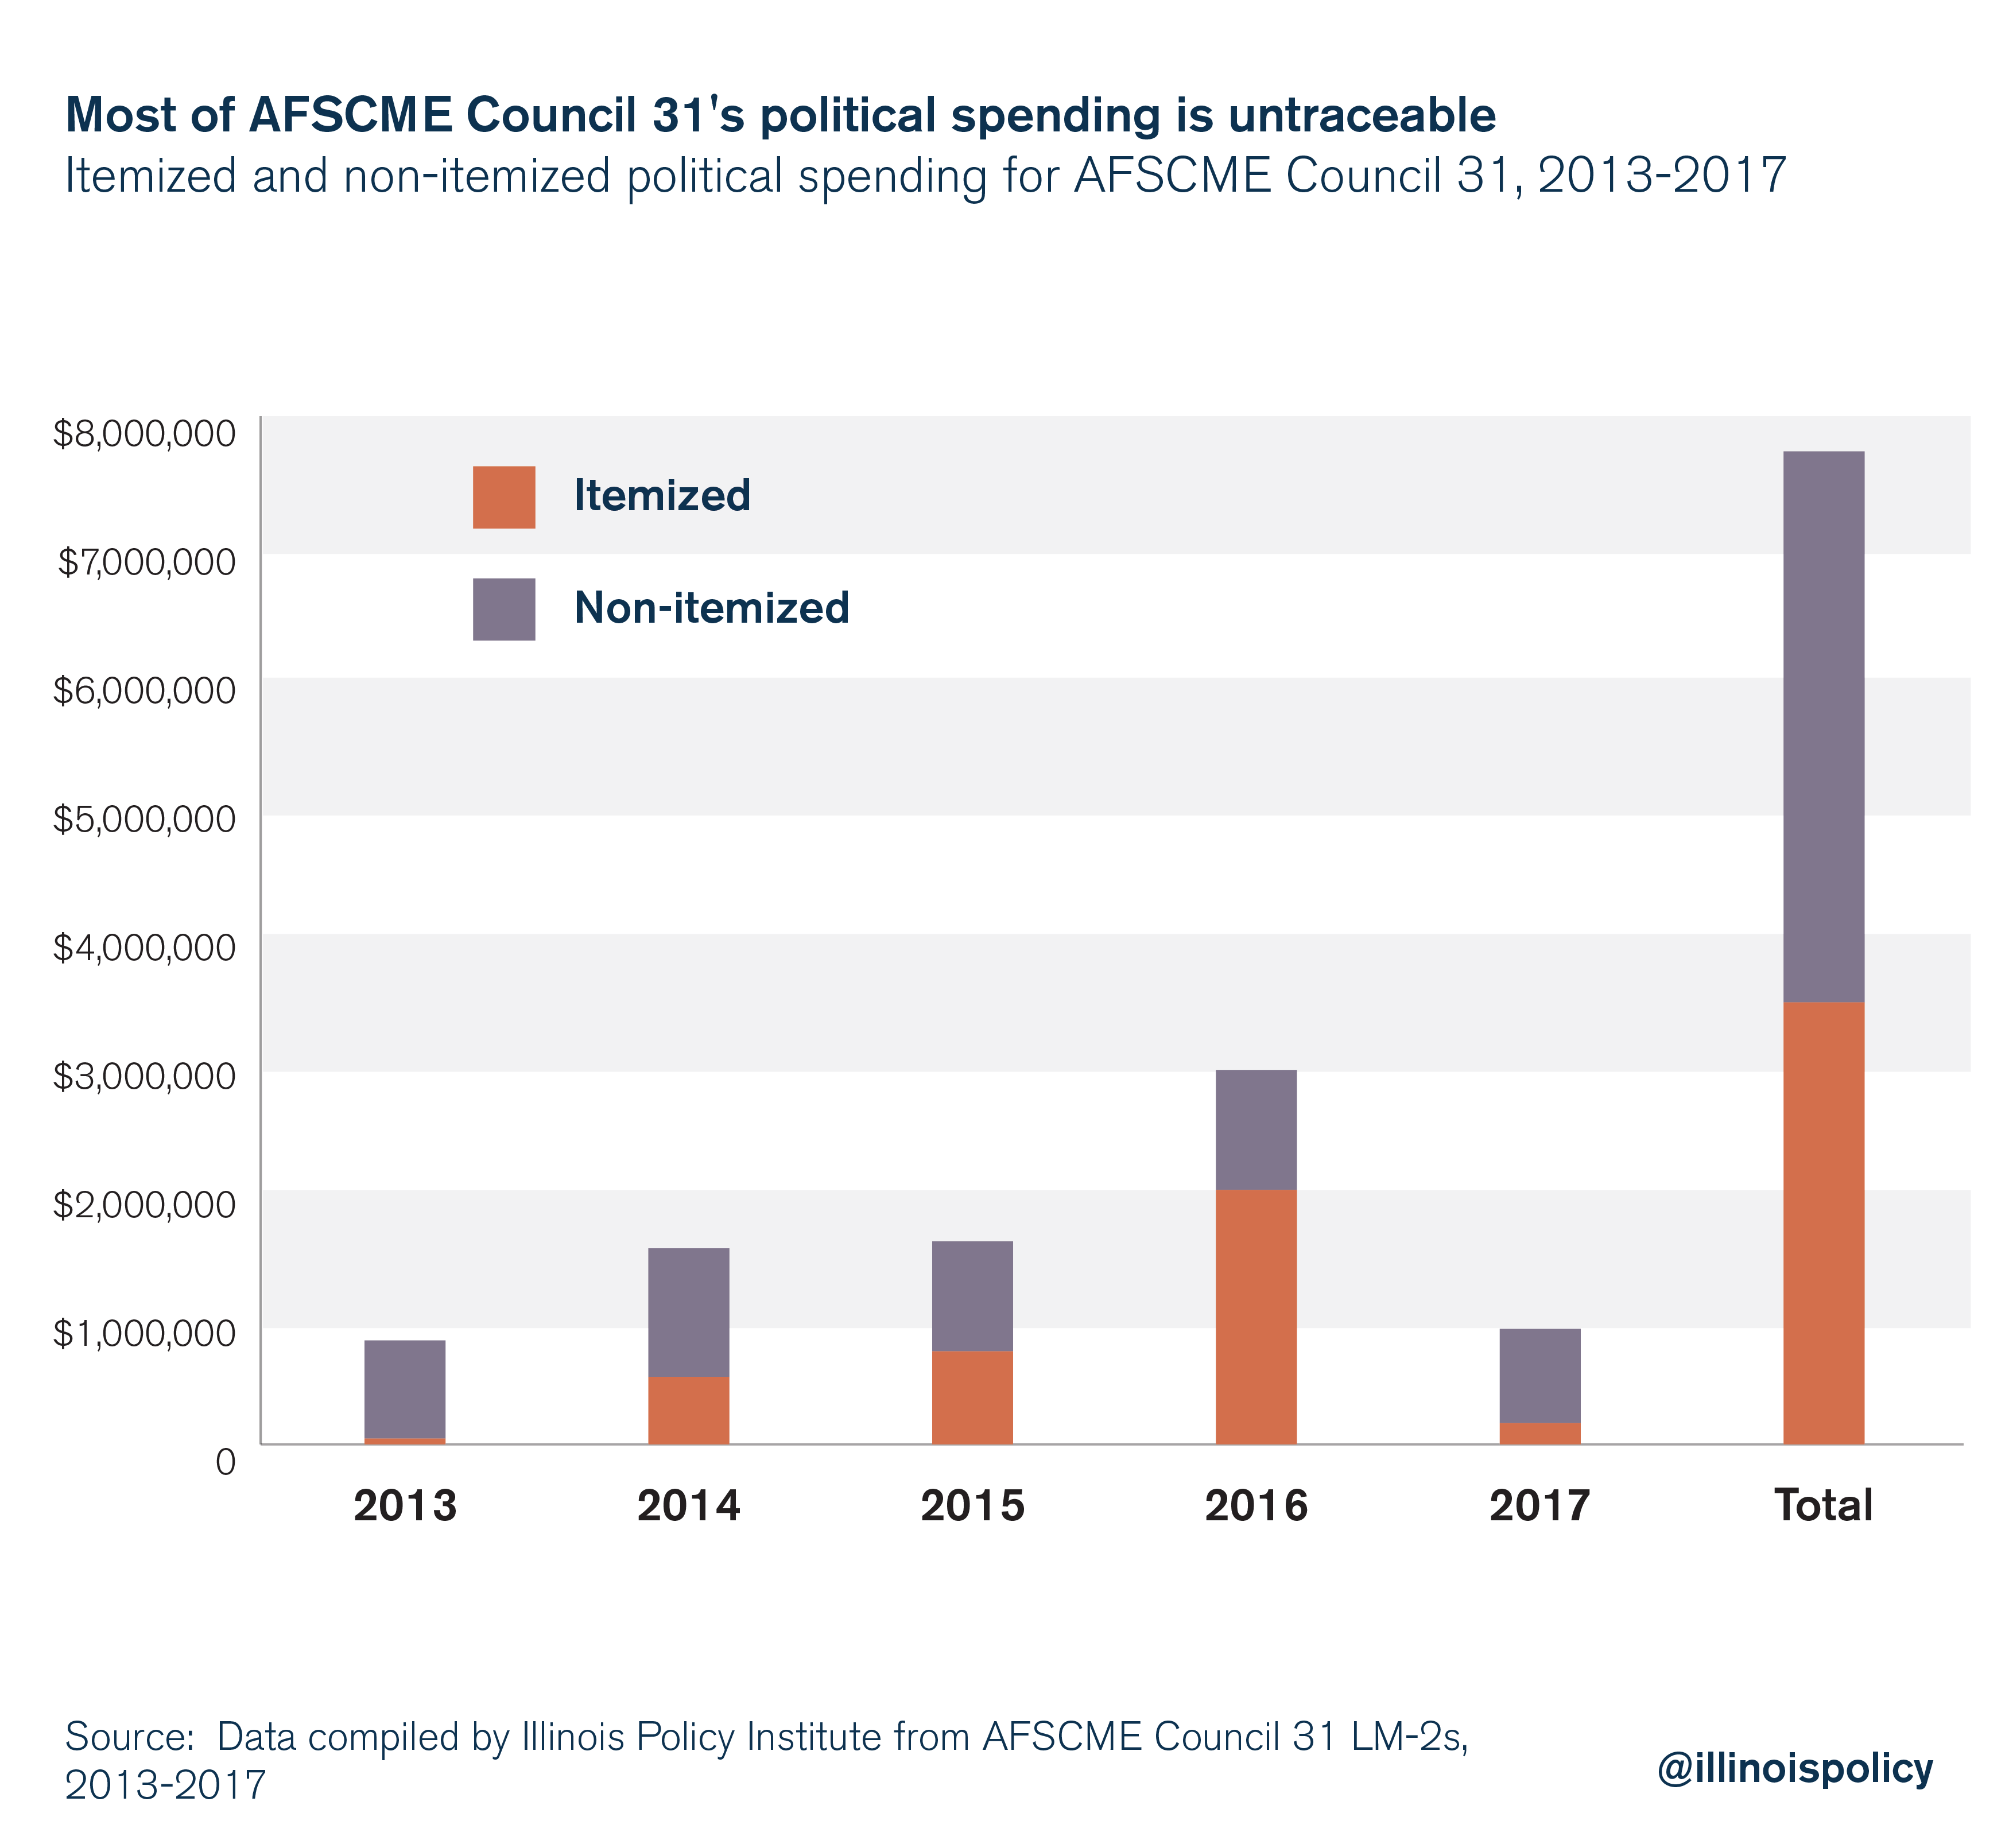 Most of AFSCME Council 31's spending is untraceable